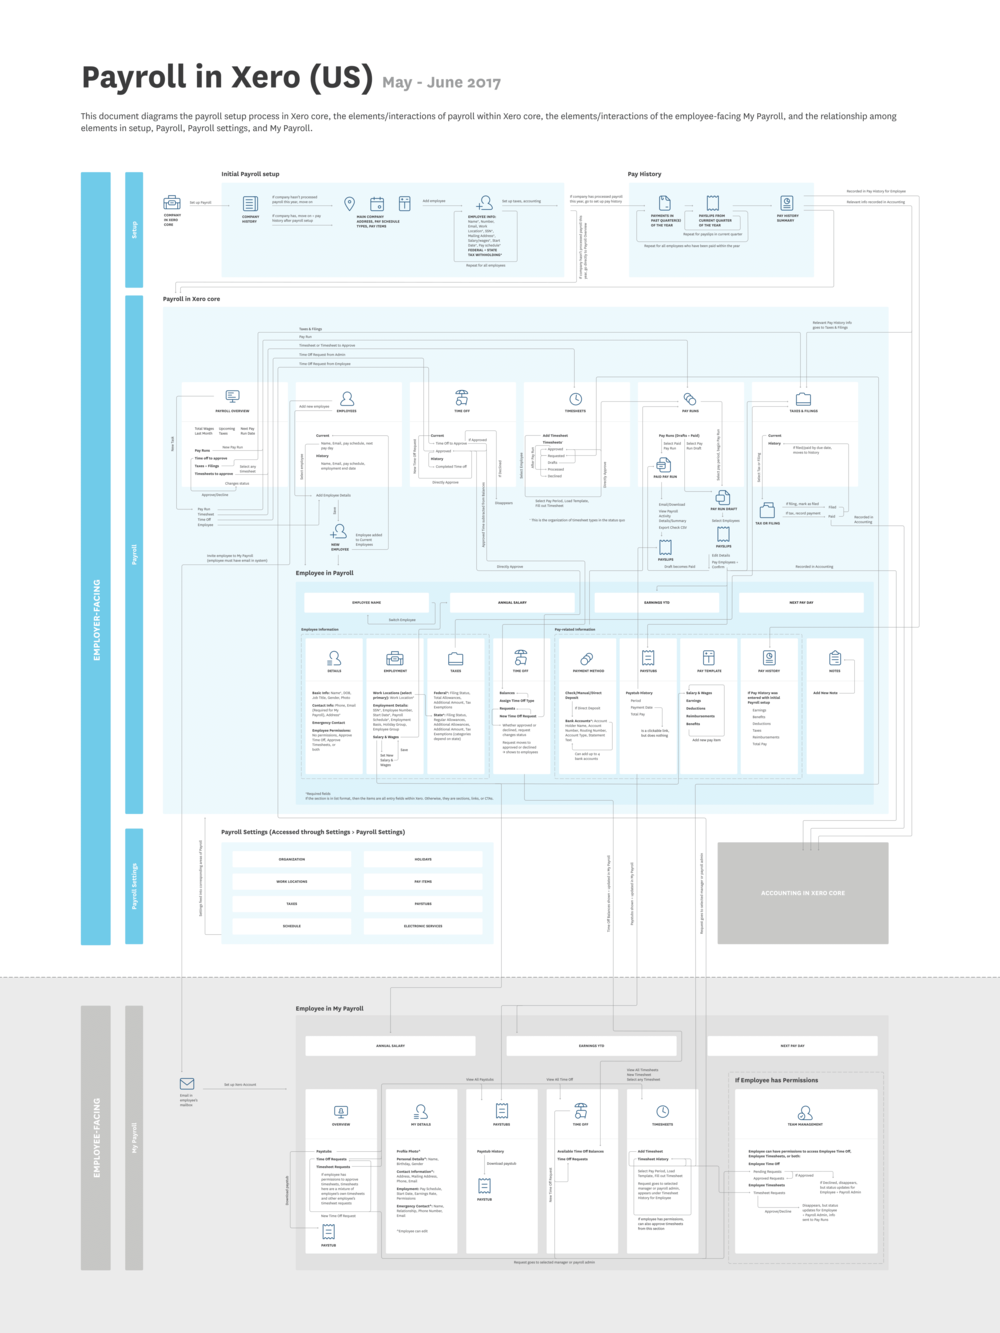 Mapping the Xero Payroll product